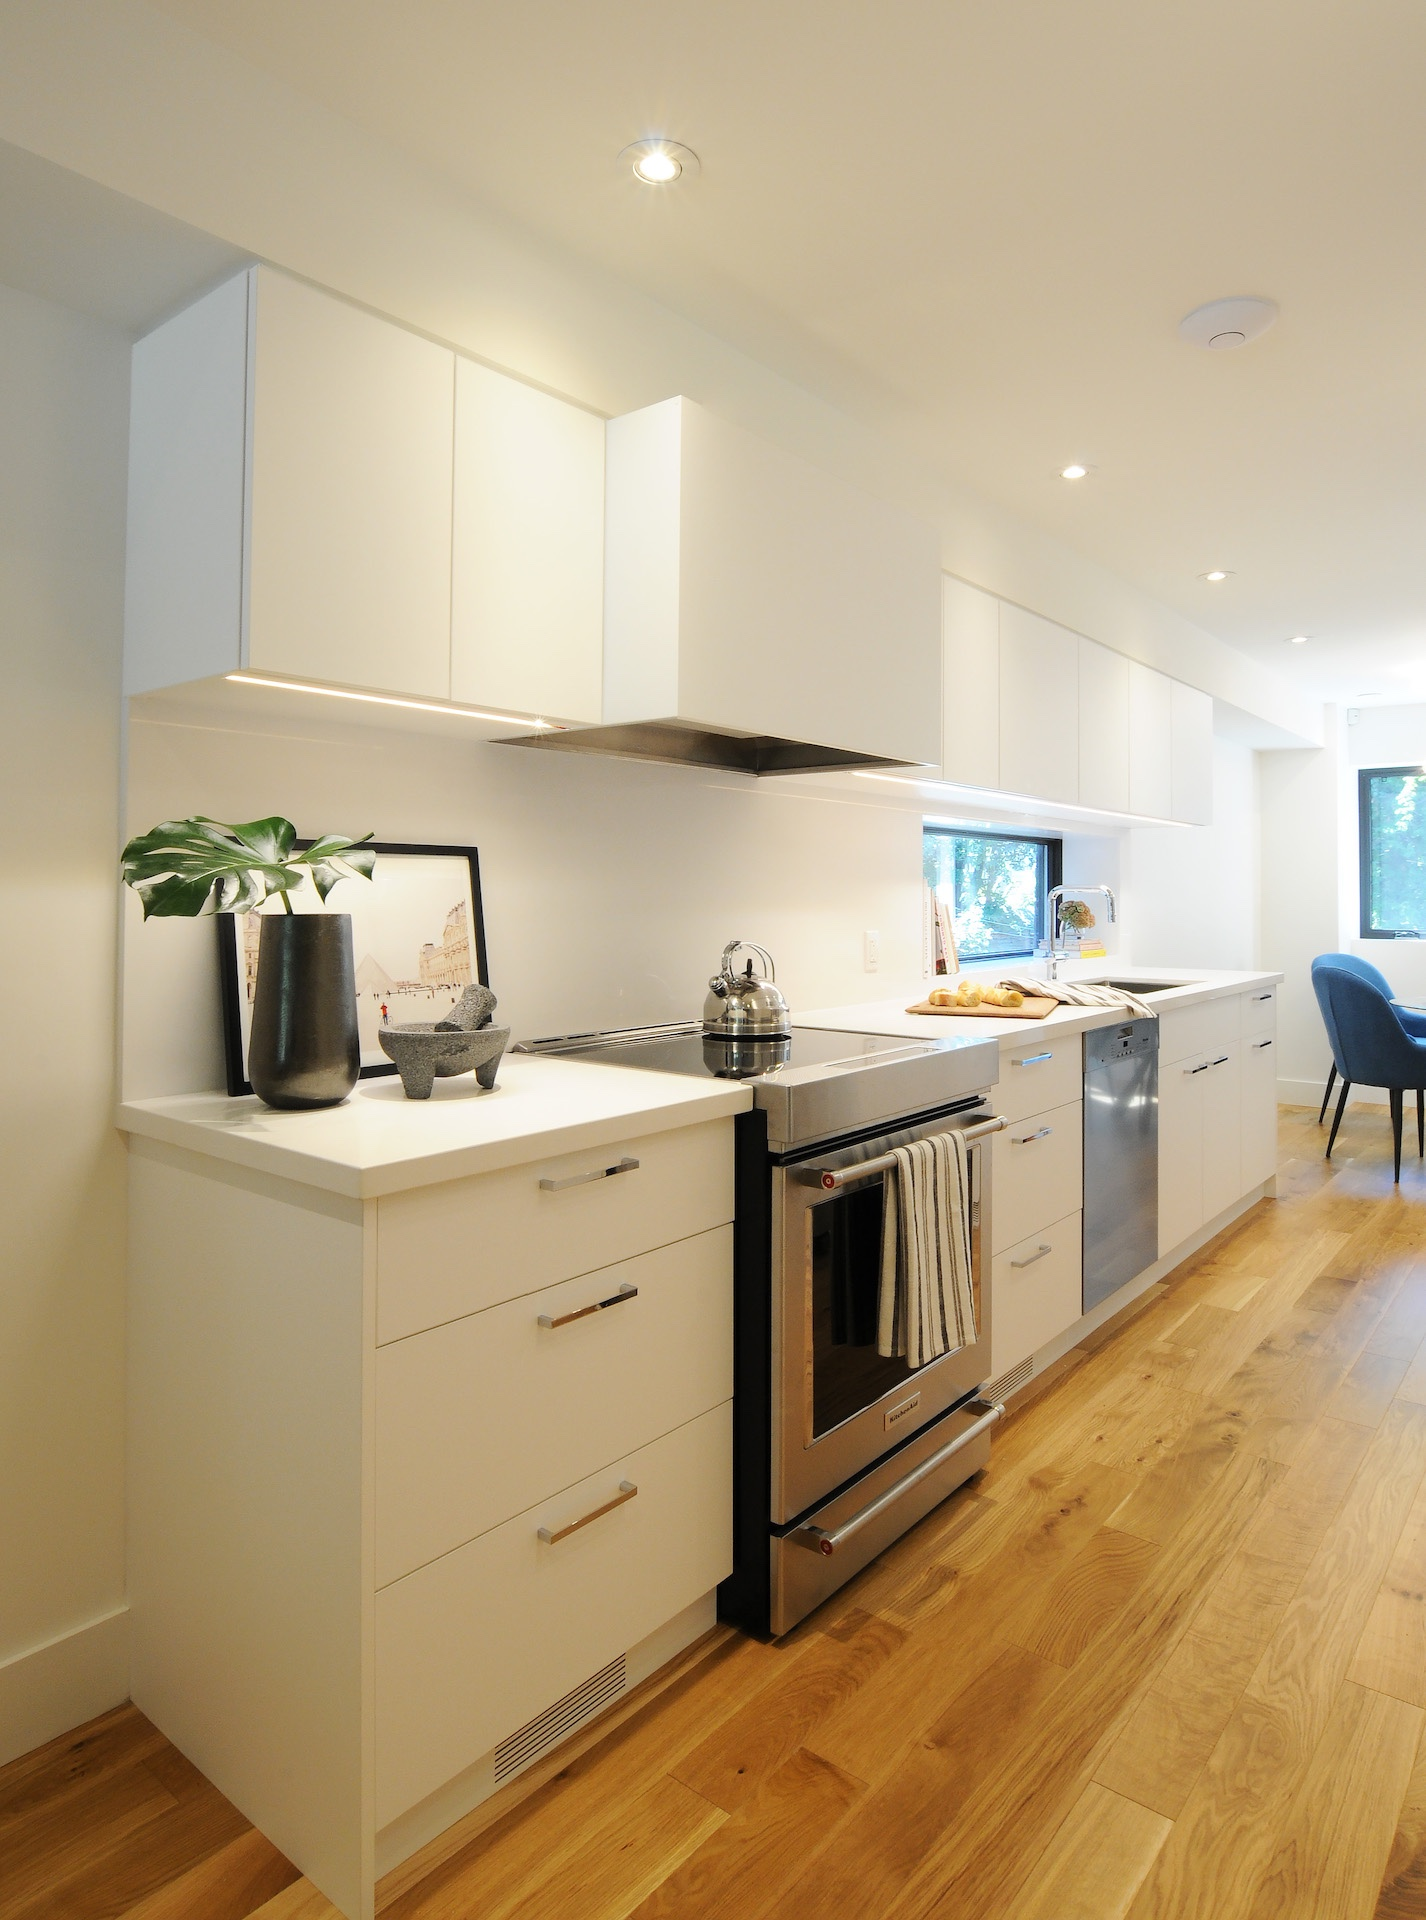 White kitchen drawers with oven